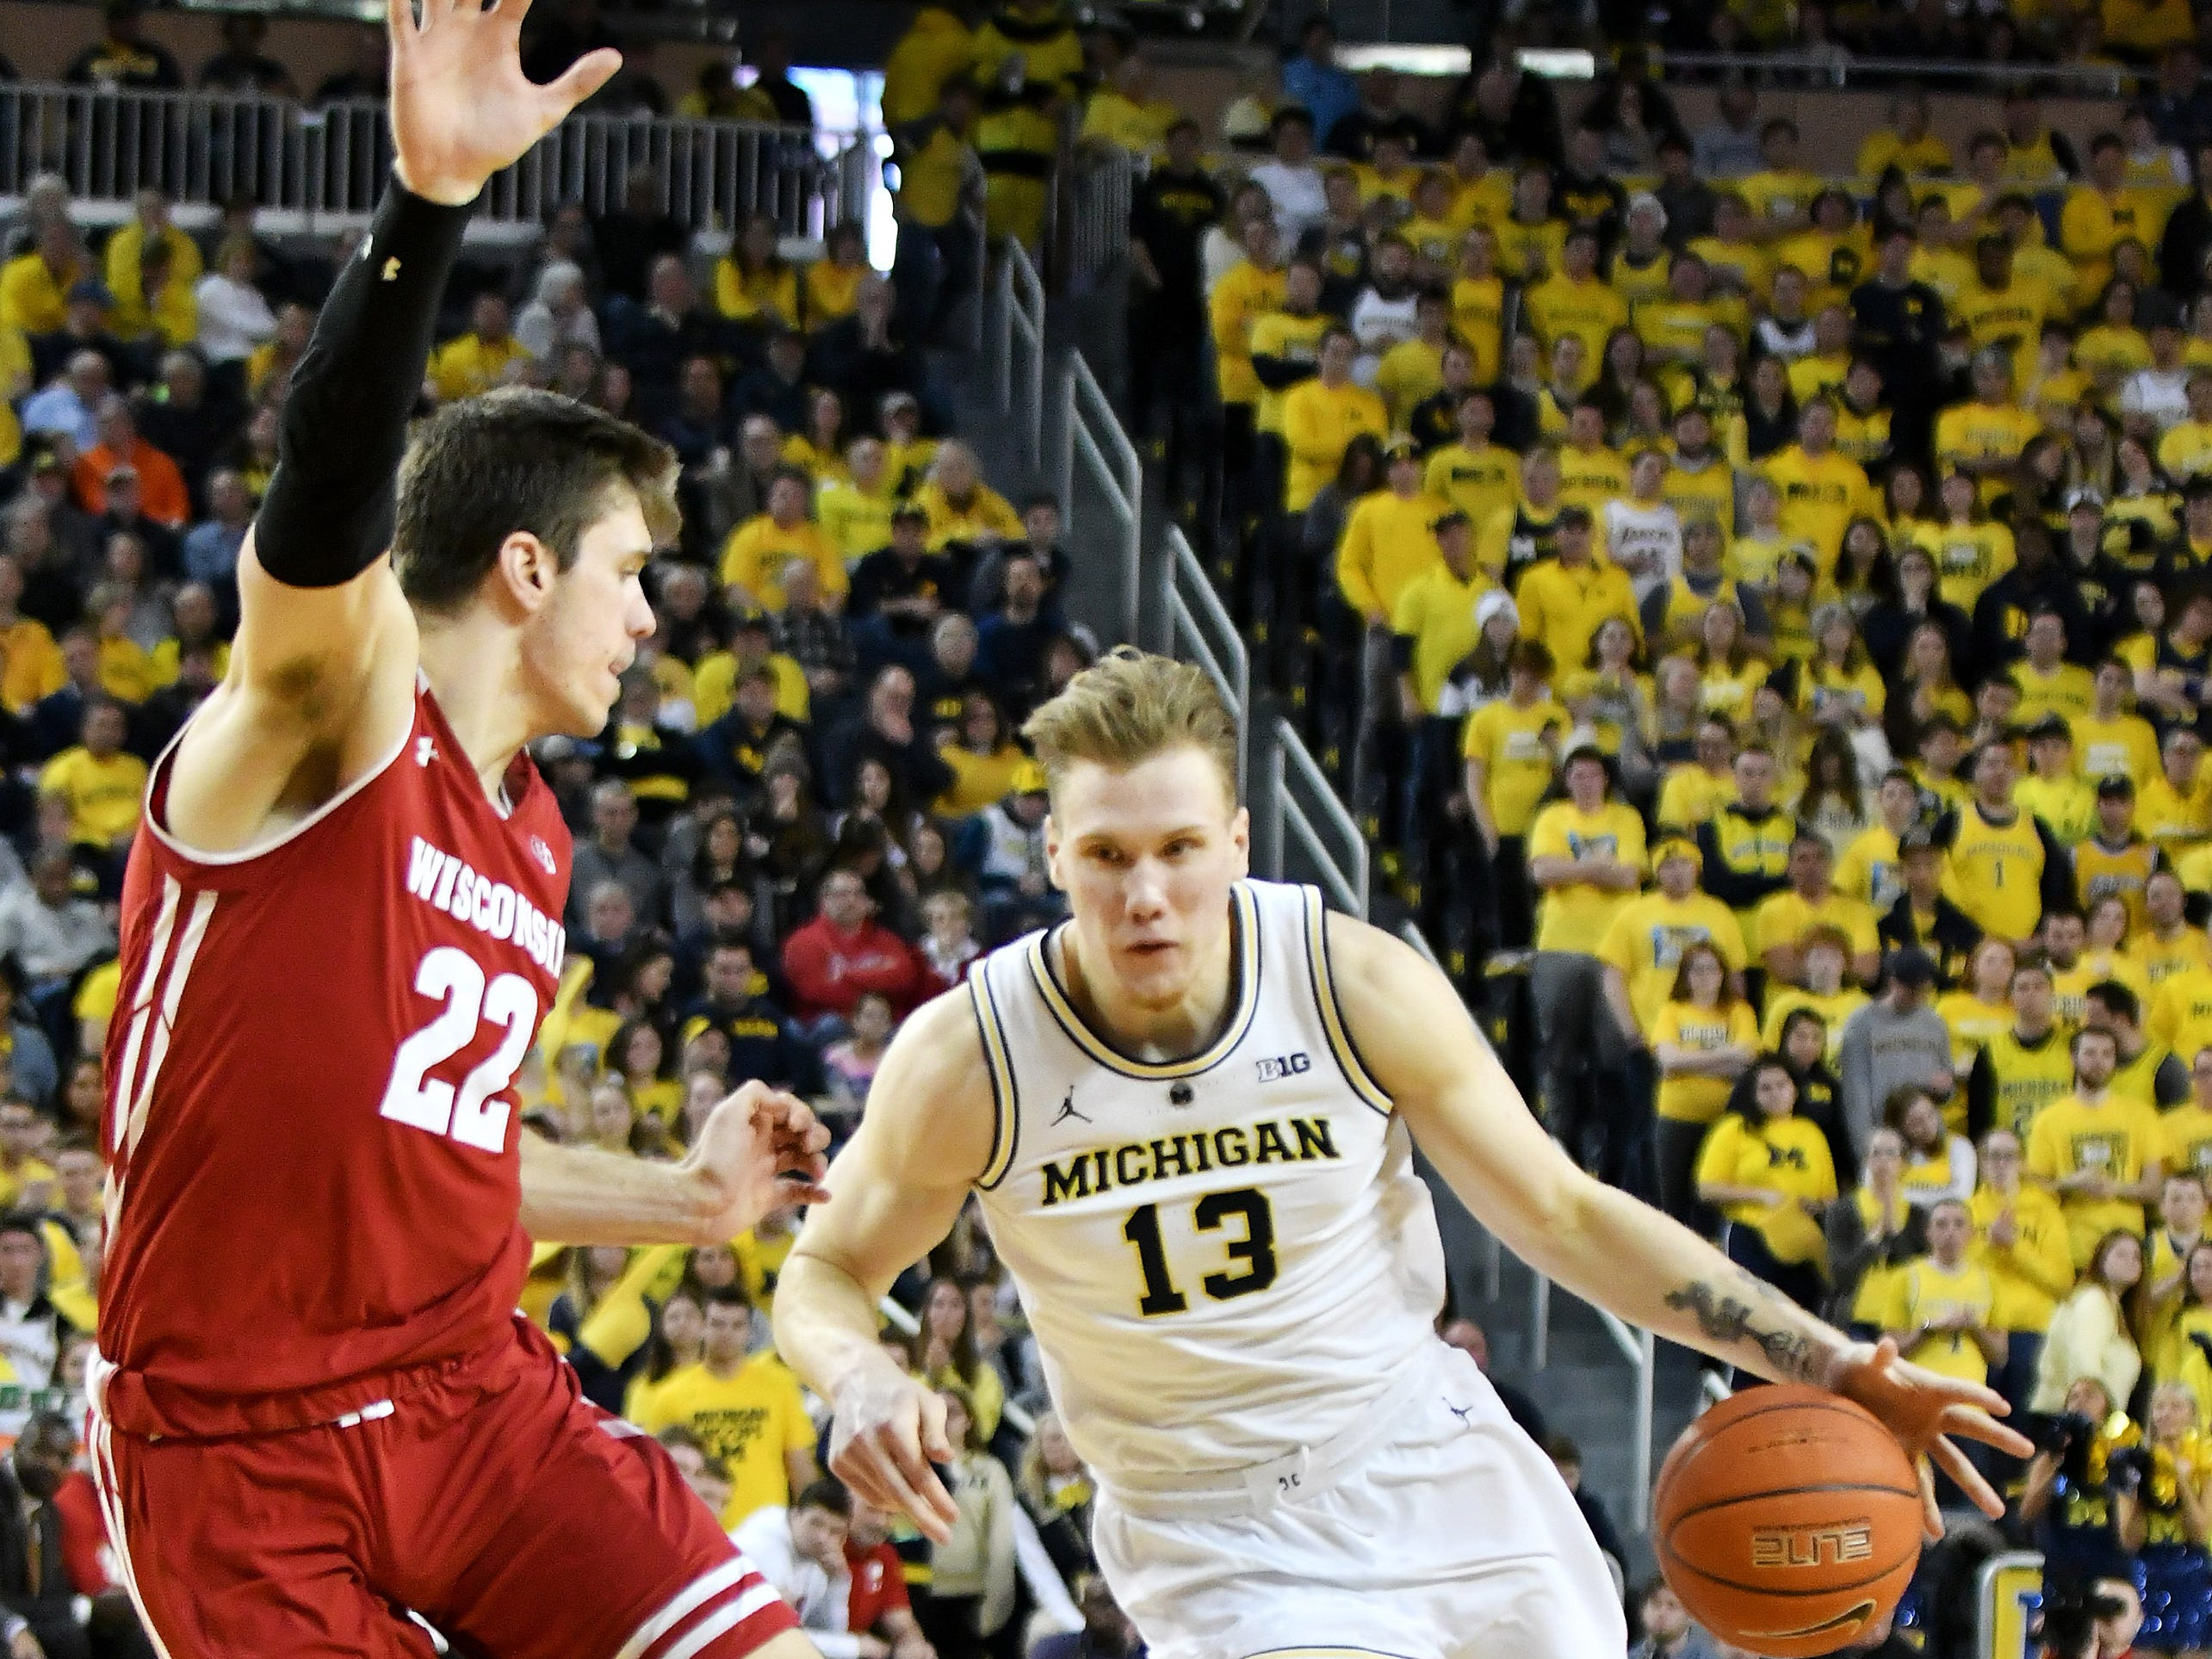 Wisconsin forward Ethan Happ (22) guards Michigan forward Ignas Brazdeikis (13) in the second half.